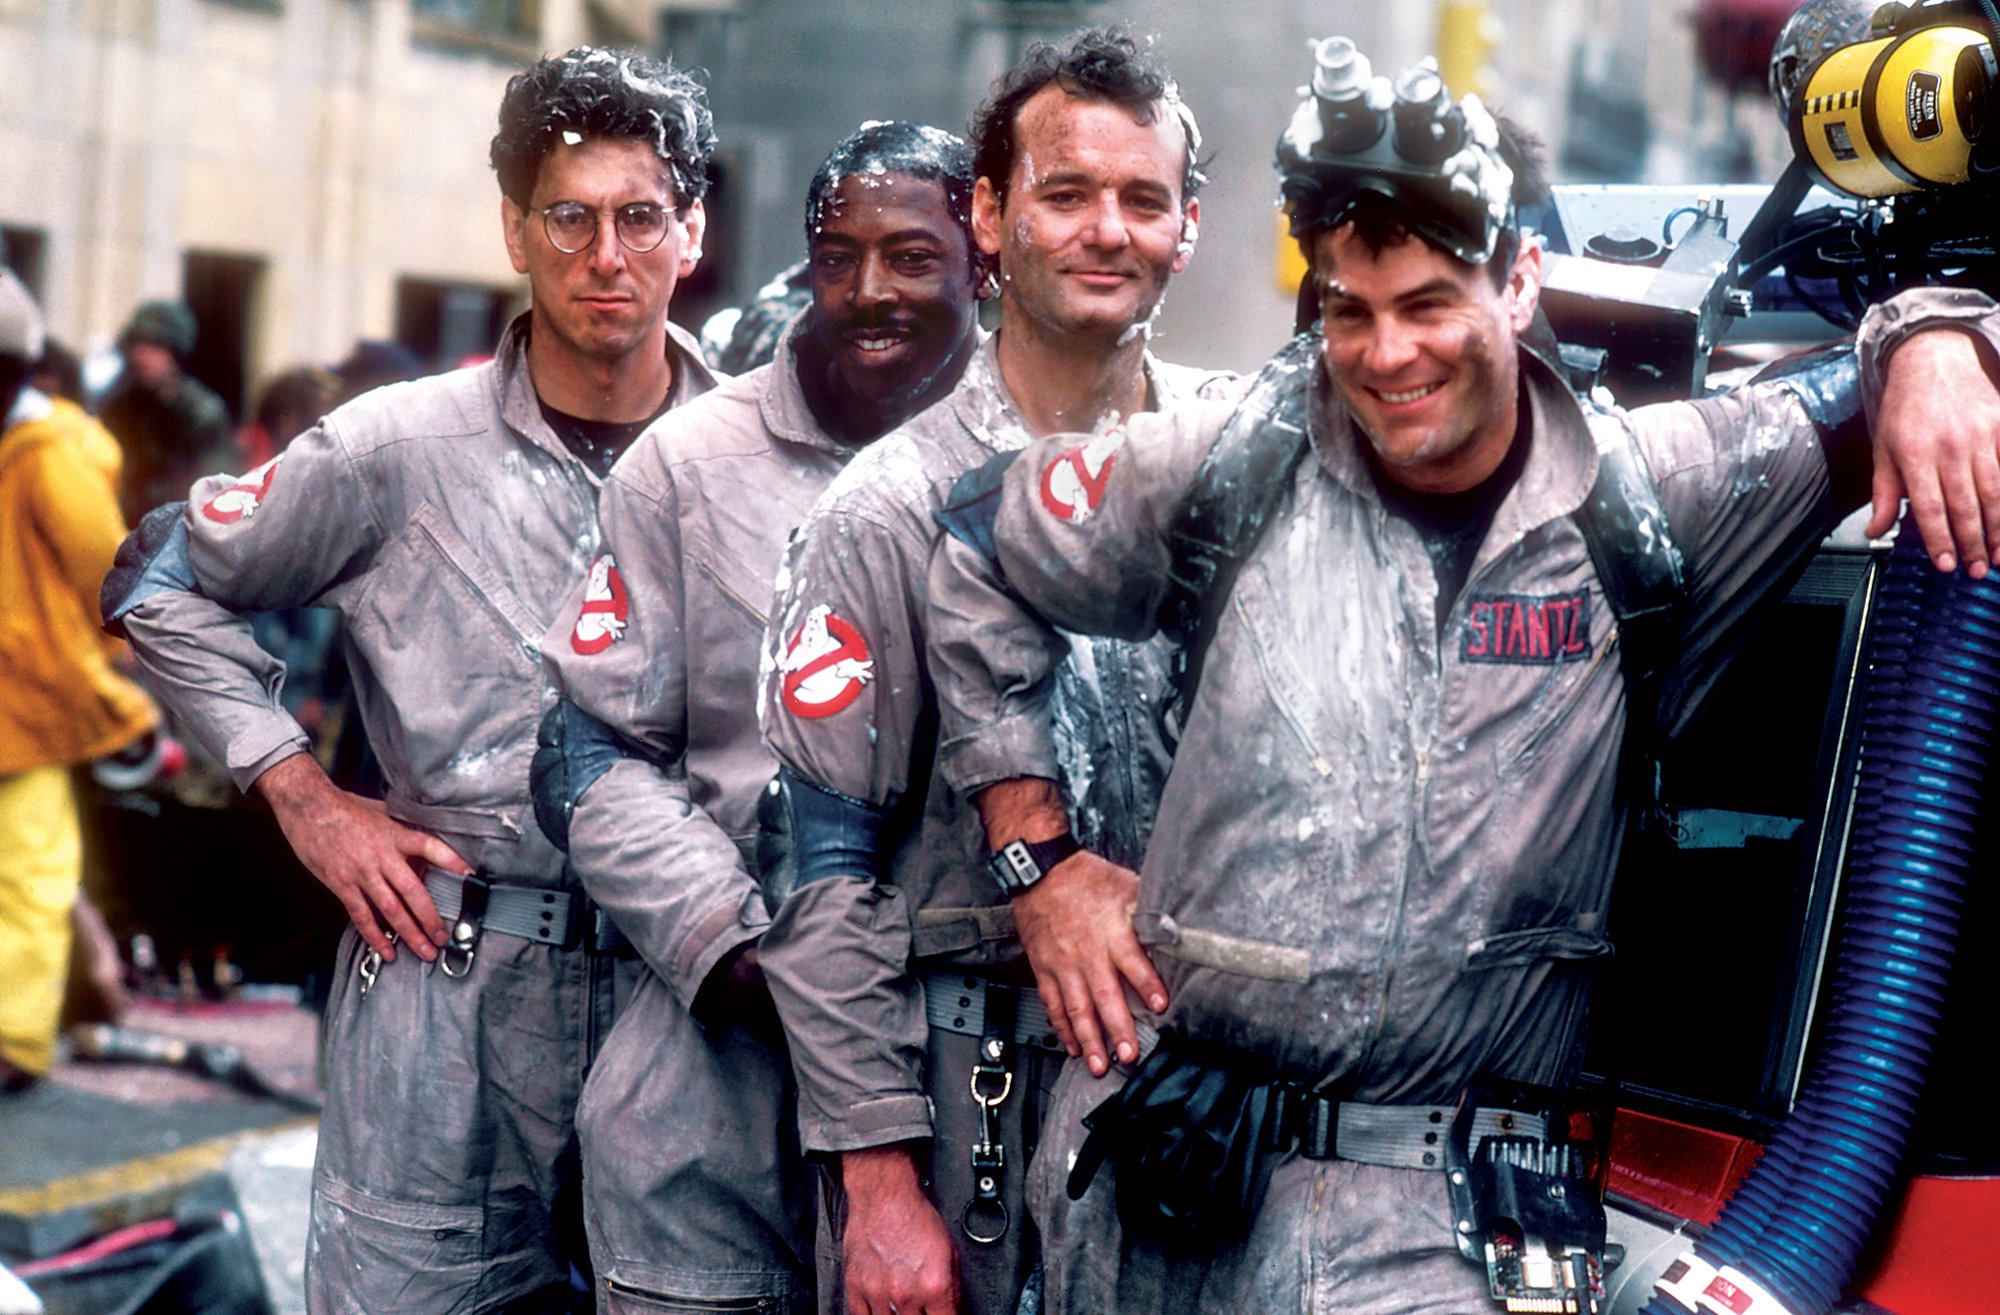 Favorite movie of all time, staring my magnificent man friends. 4/4 would marry.